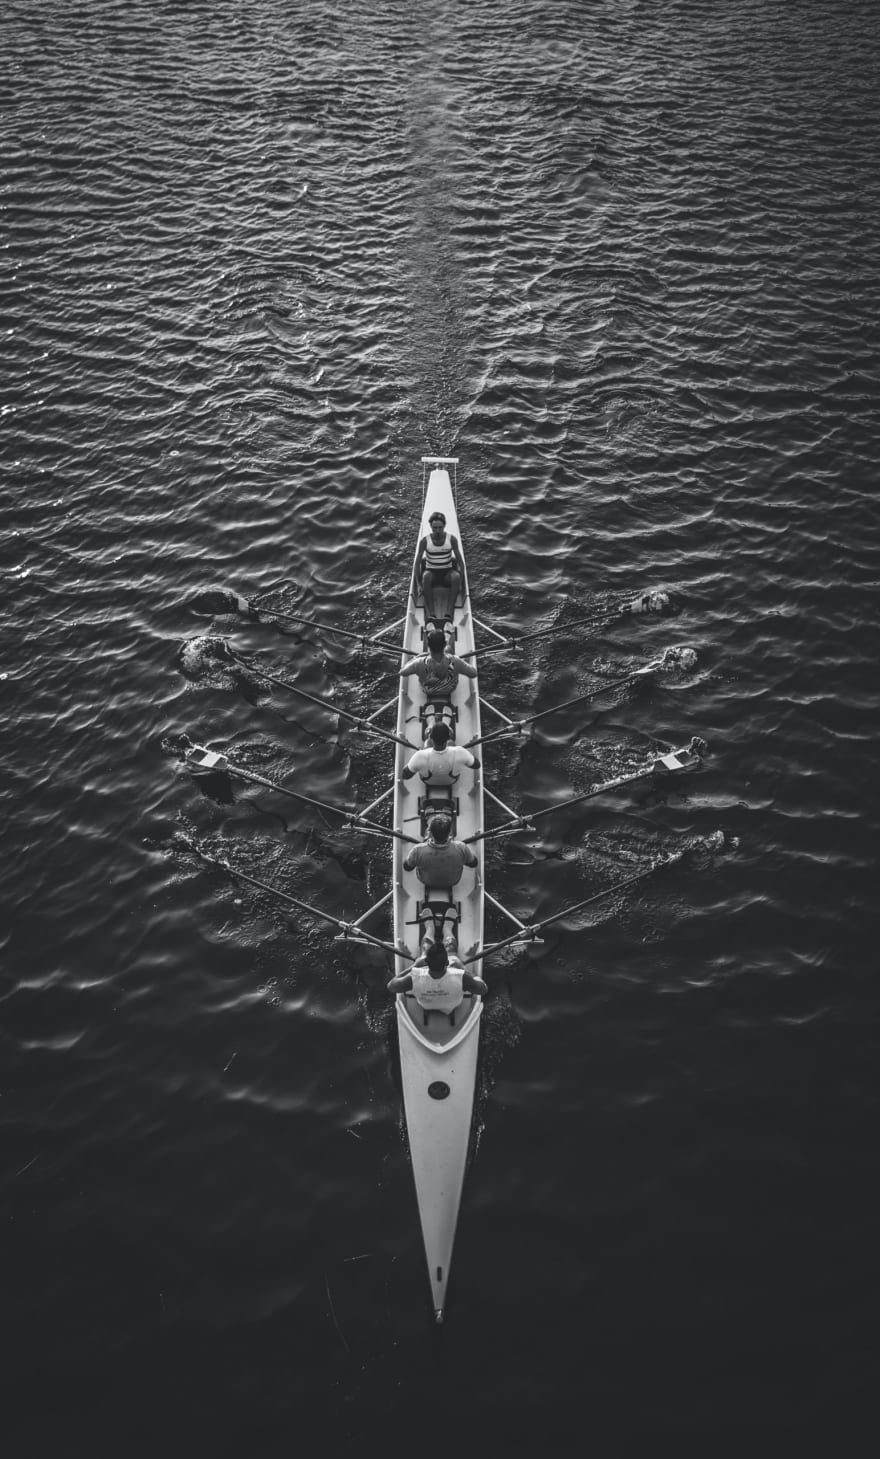 people riding boat on body of water photo